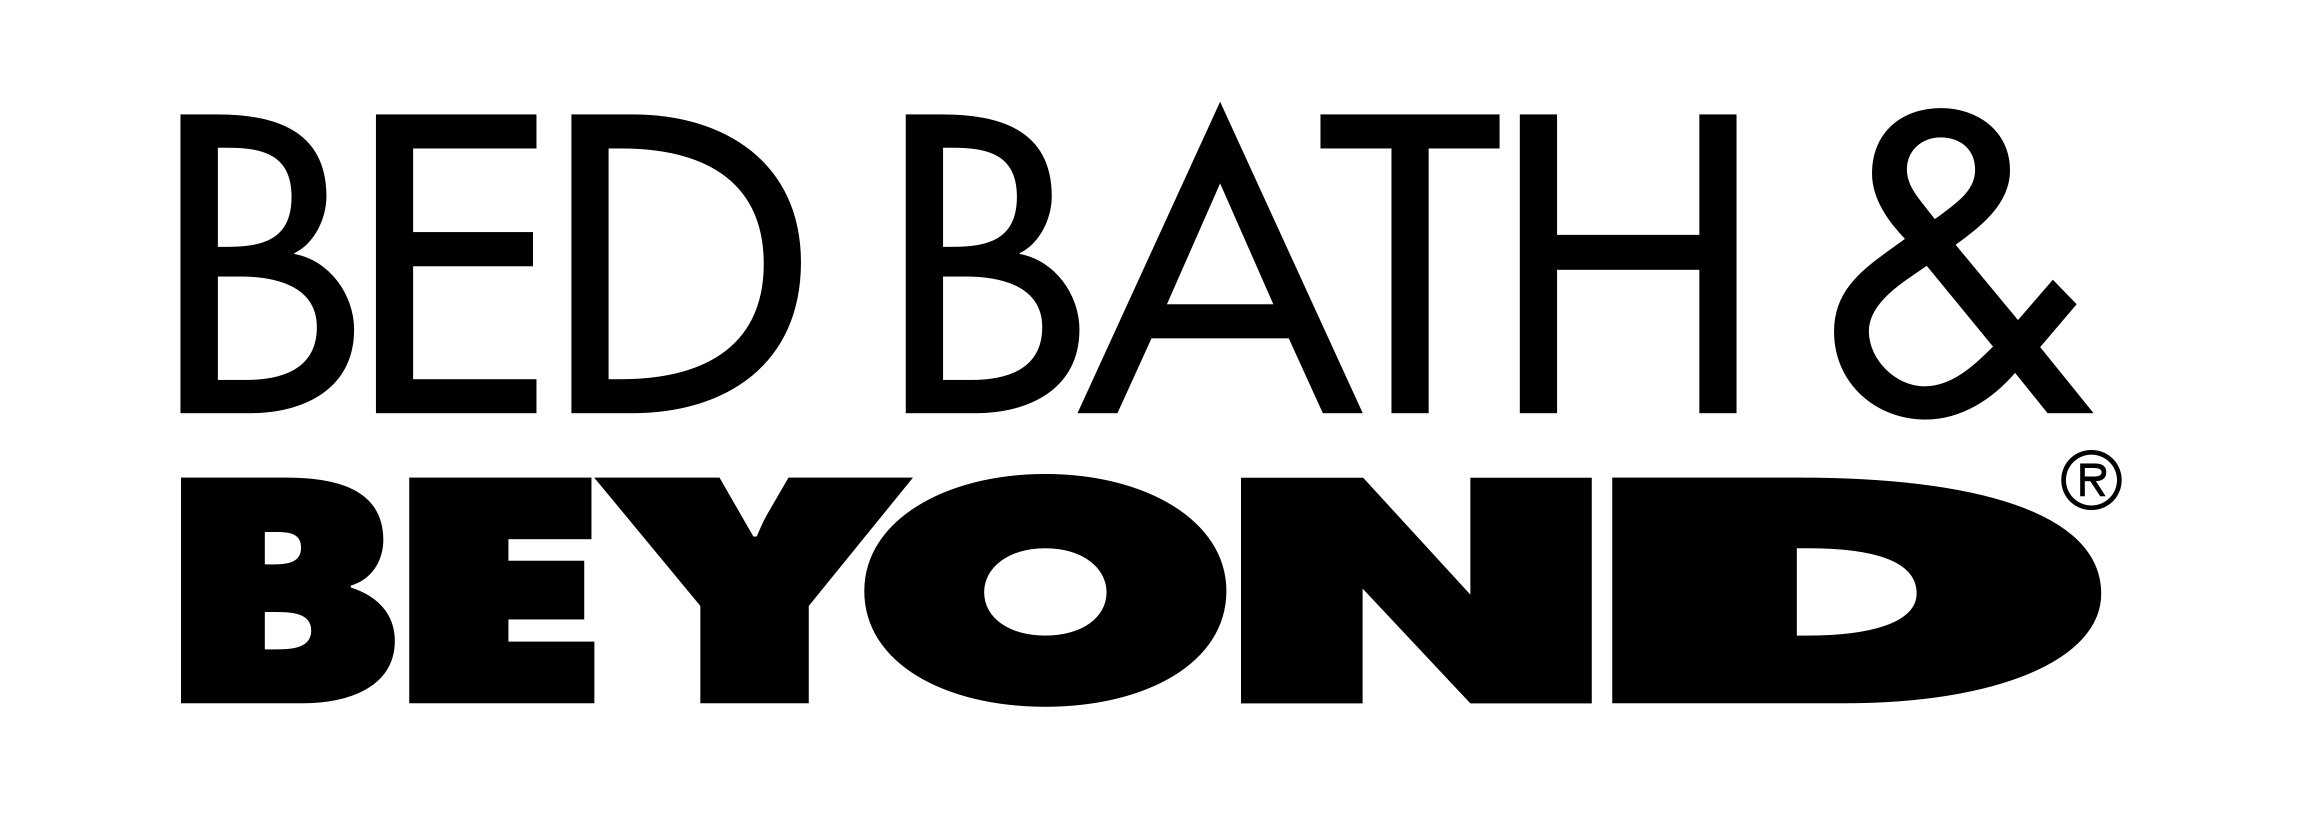 Bed Bath and Beyond Logo, Bed Bath and Beyond Symbol, Meaning ...